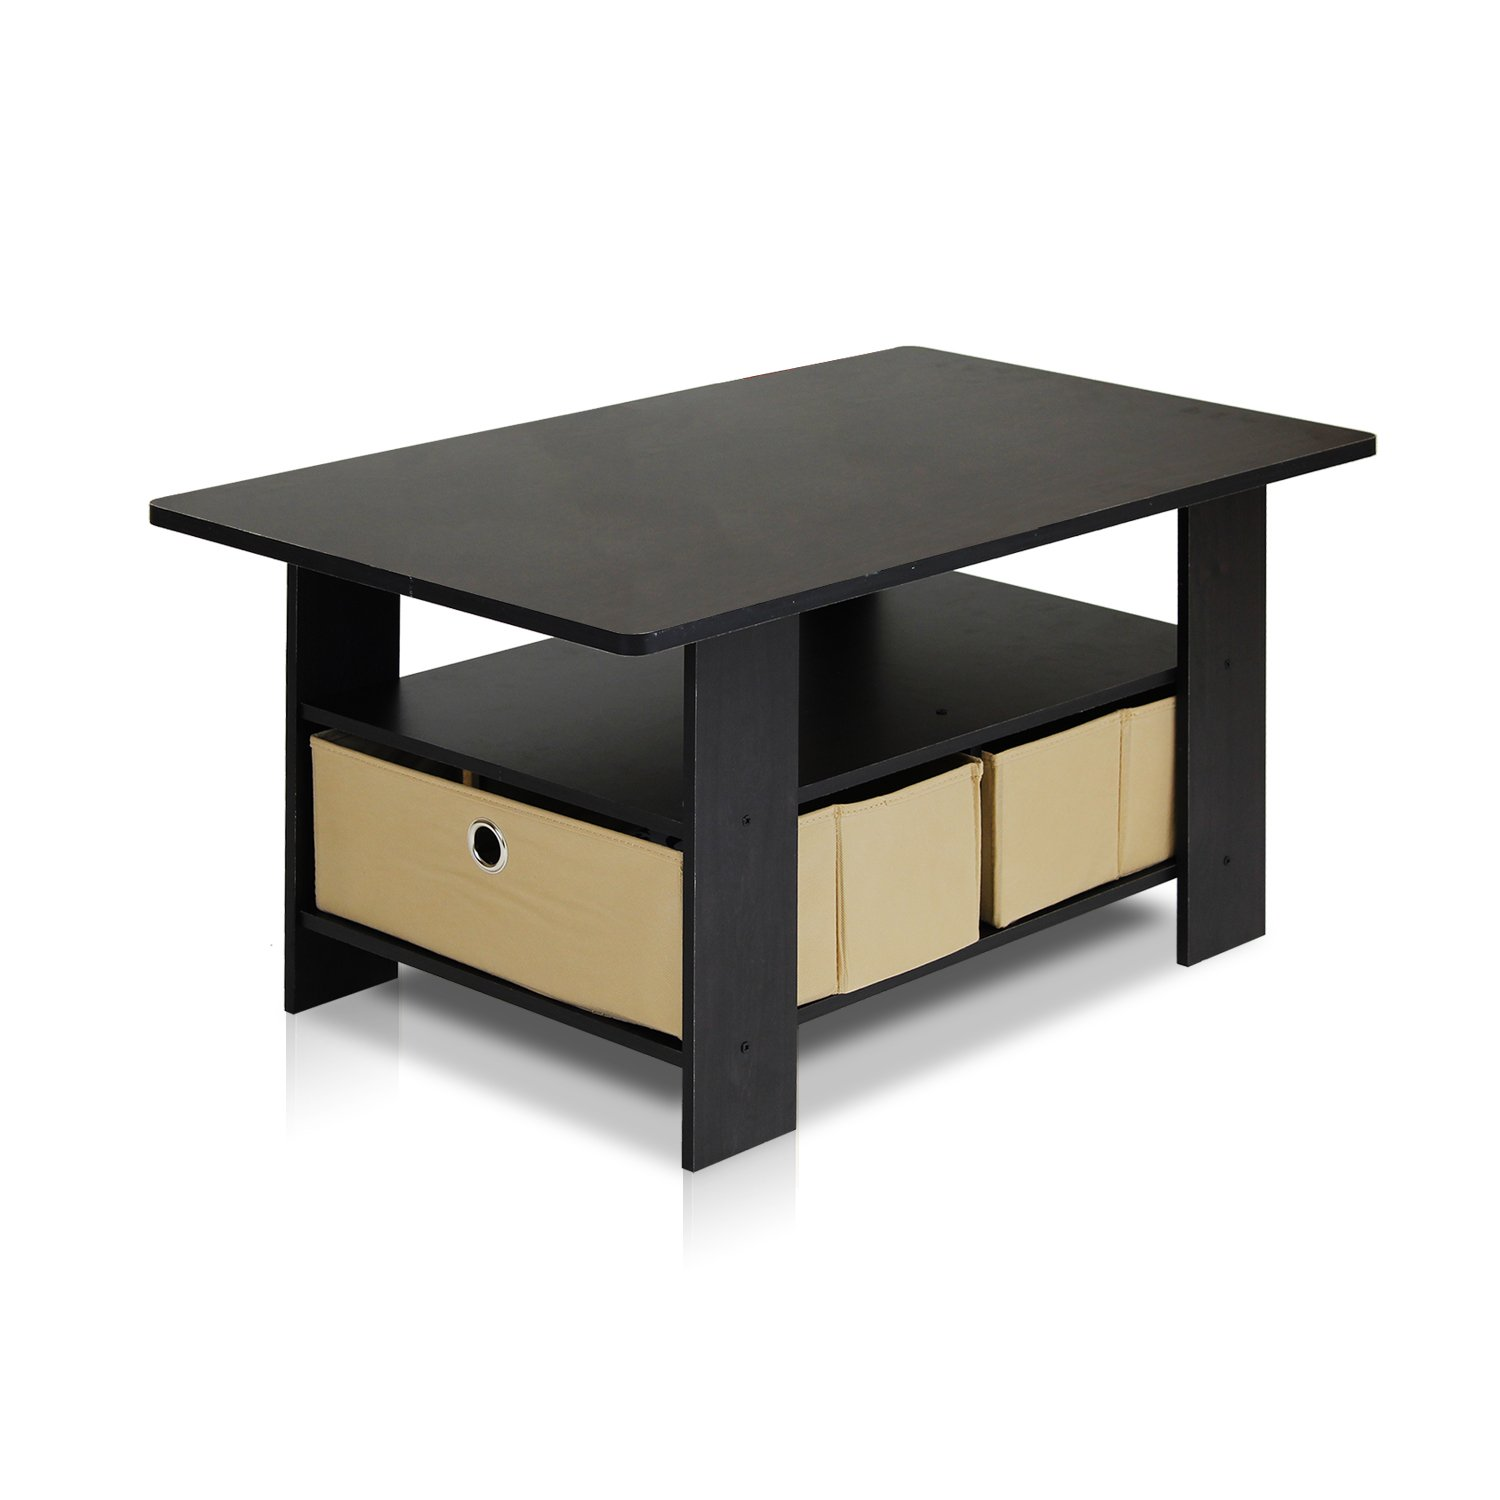 Small coffee table living room furniture dorm desk home for Coffee table 48 x 36